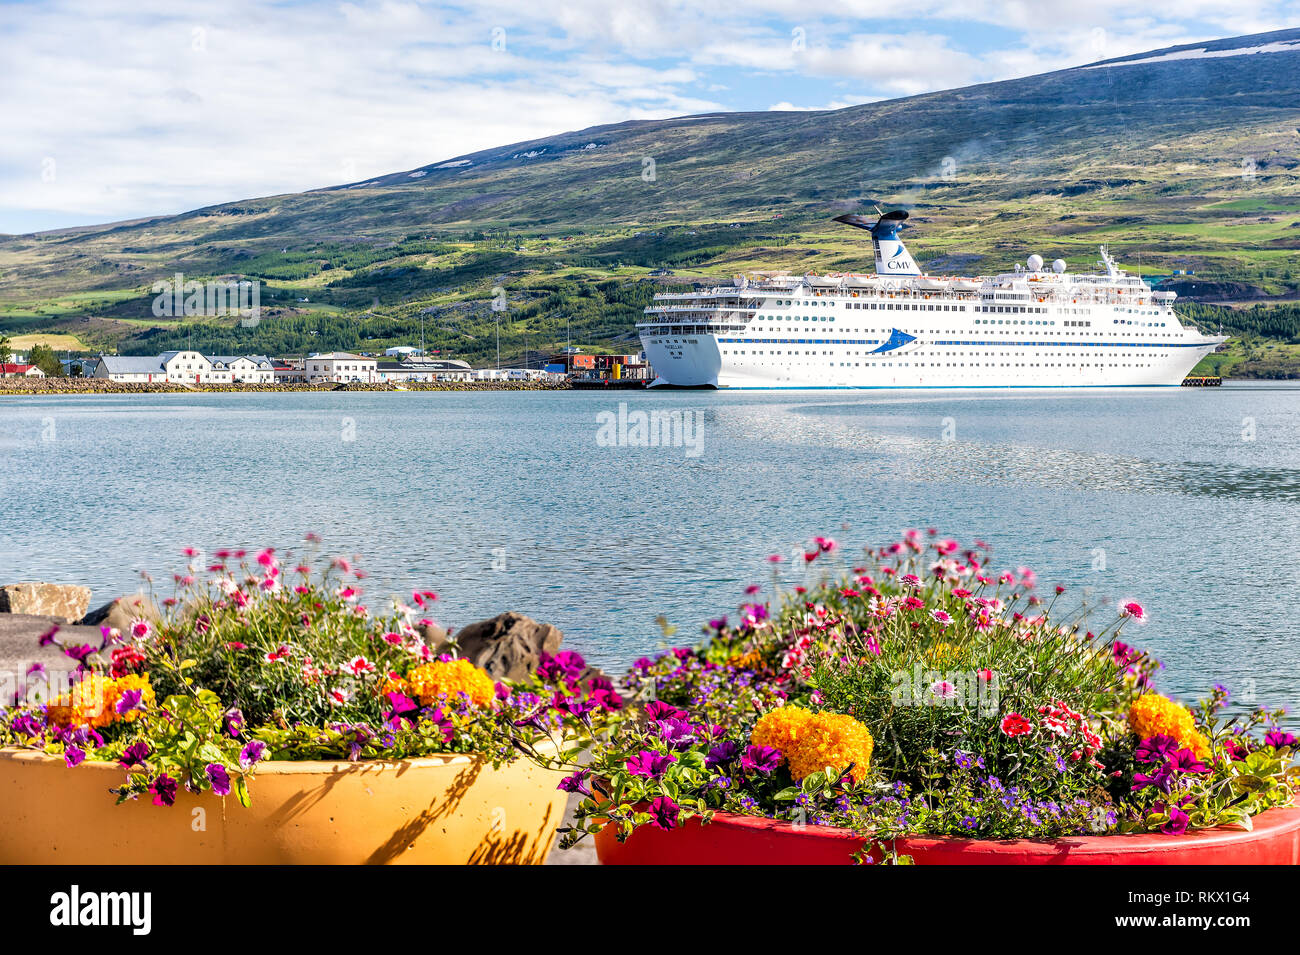 Akureyri, Iceland - June 17, 2018: Fishing village town harbor marina with cruise ship boat and fjord with mountains and flower pots - Stock Image